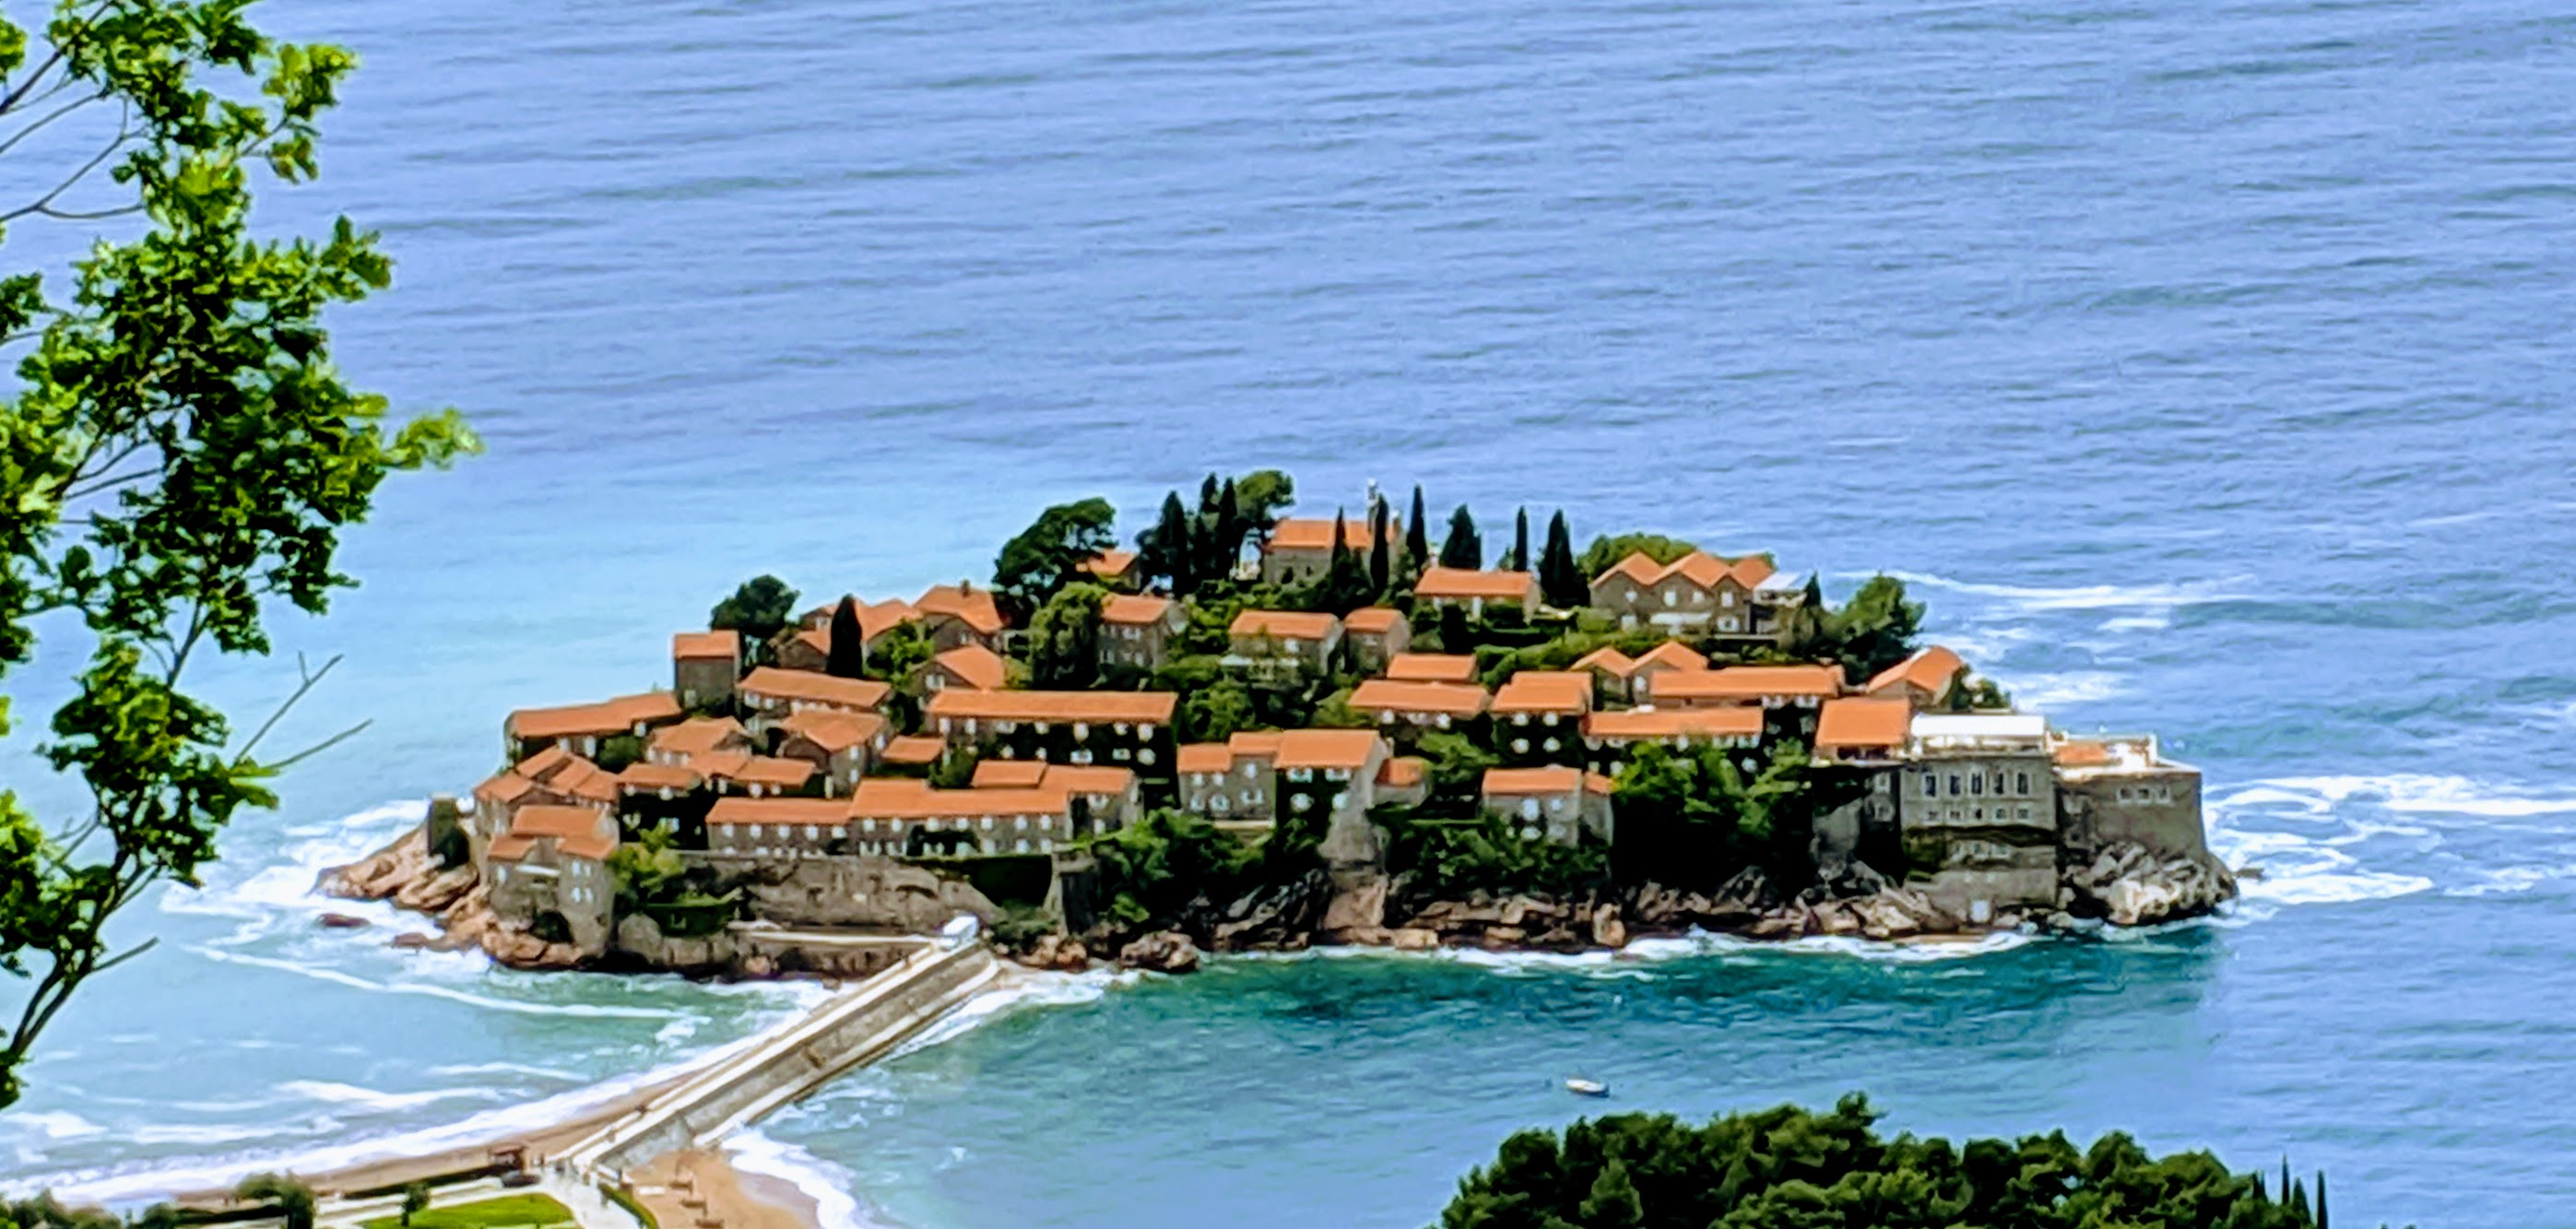 One of the top things to see and do in Montenegro is to visit Sveti Stefan.